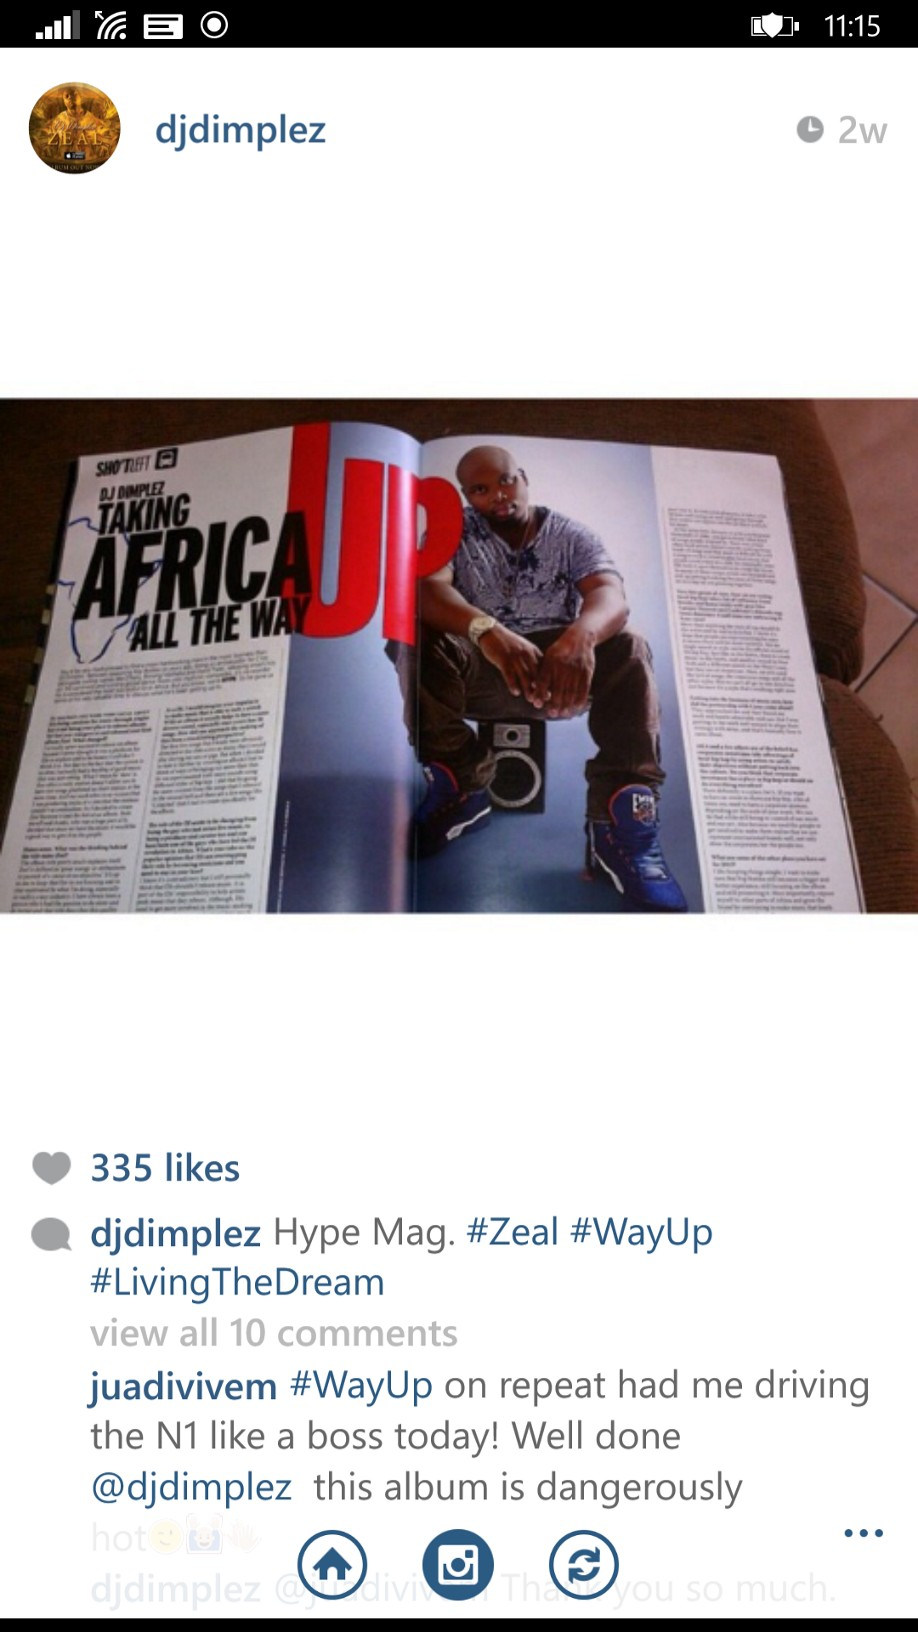 Should DJs Be Releasing Their Own Music? DJ Dimplez Address The Topic wp ss 20150417 0002